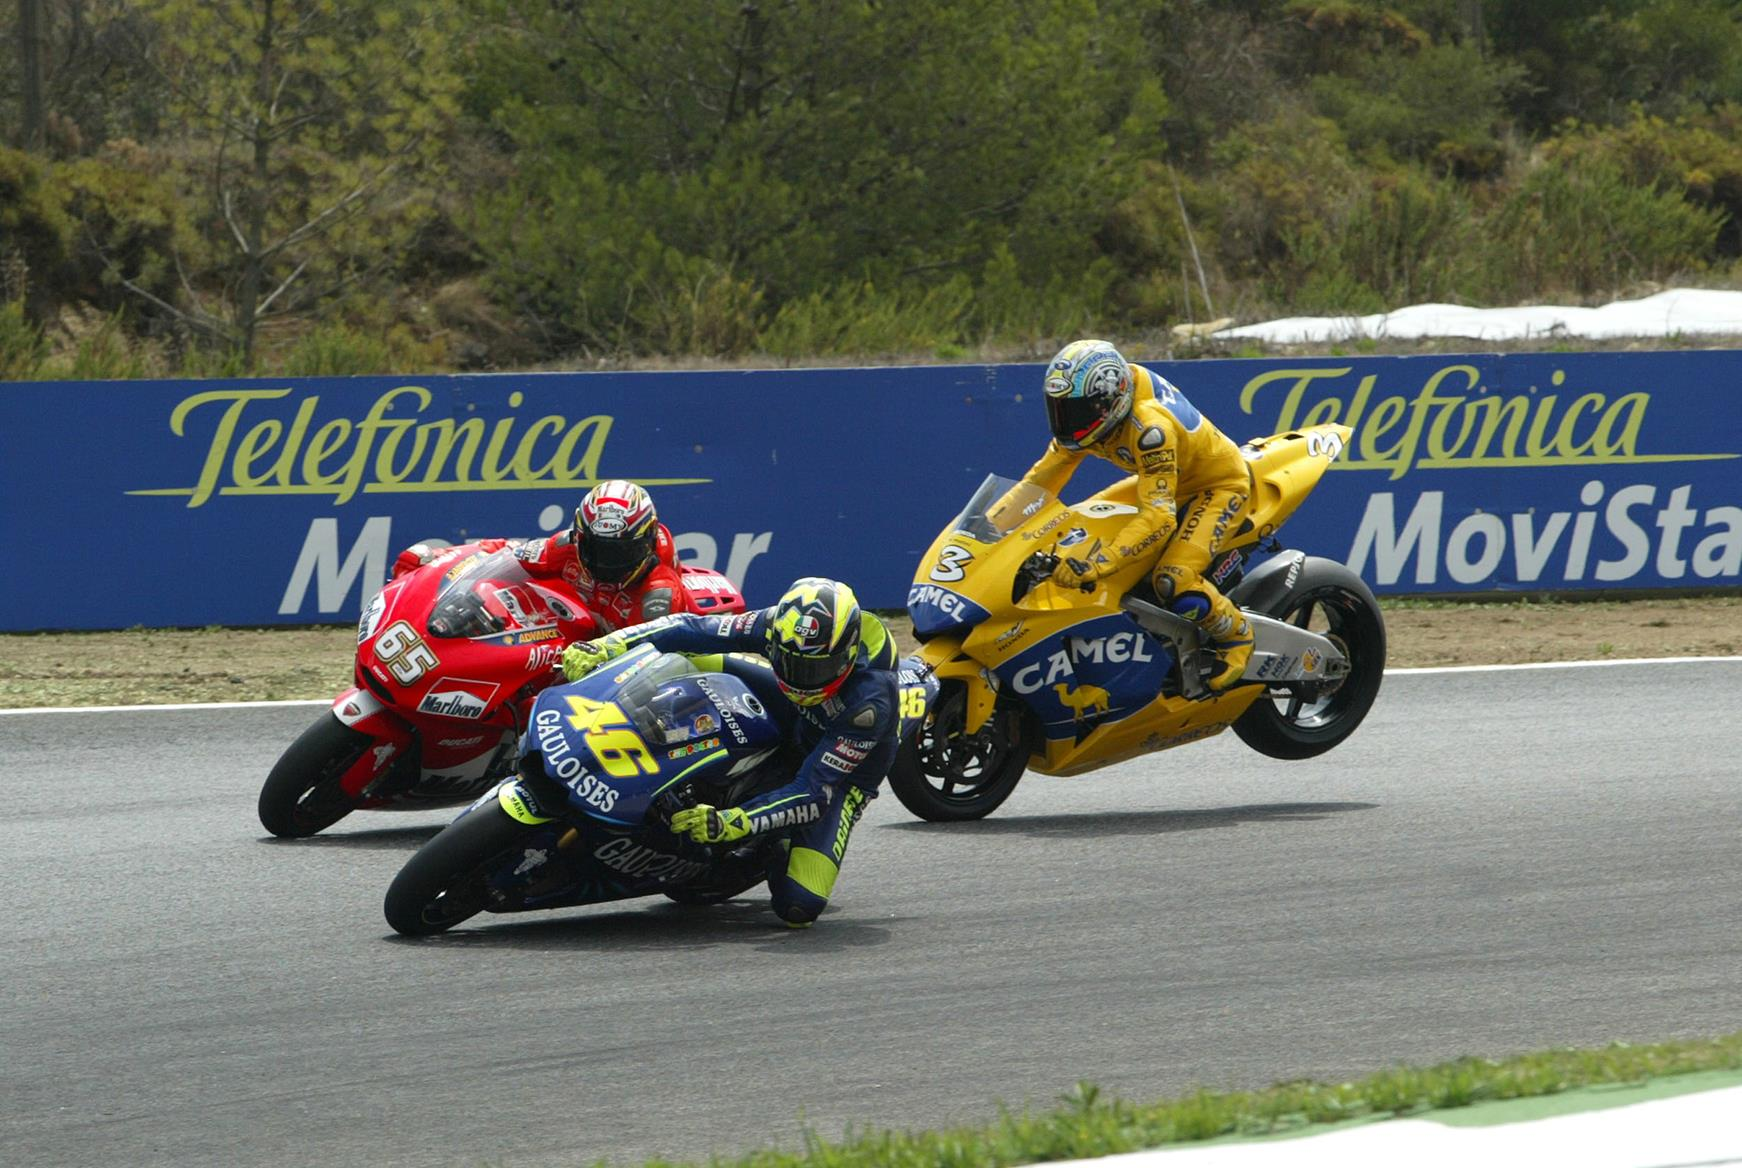 Estoril MotoGP: The winners and losers from Estoril in the past | MCN